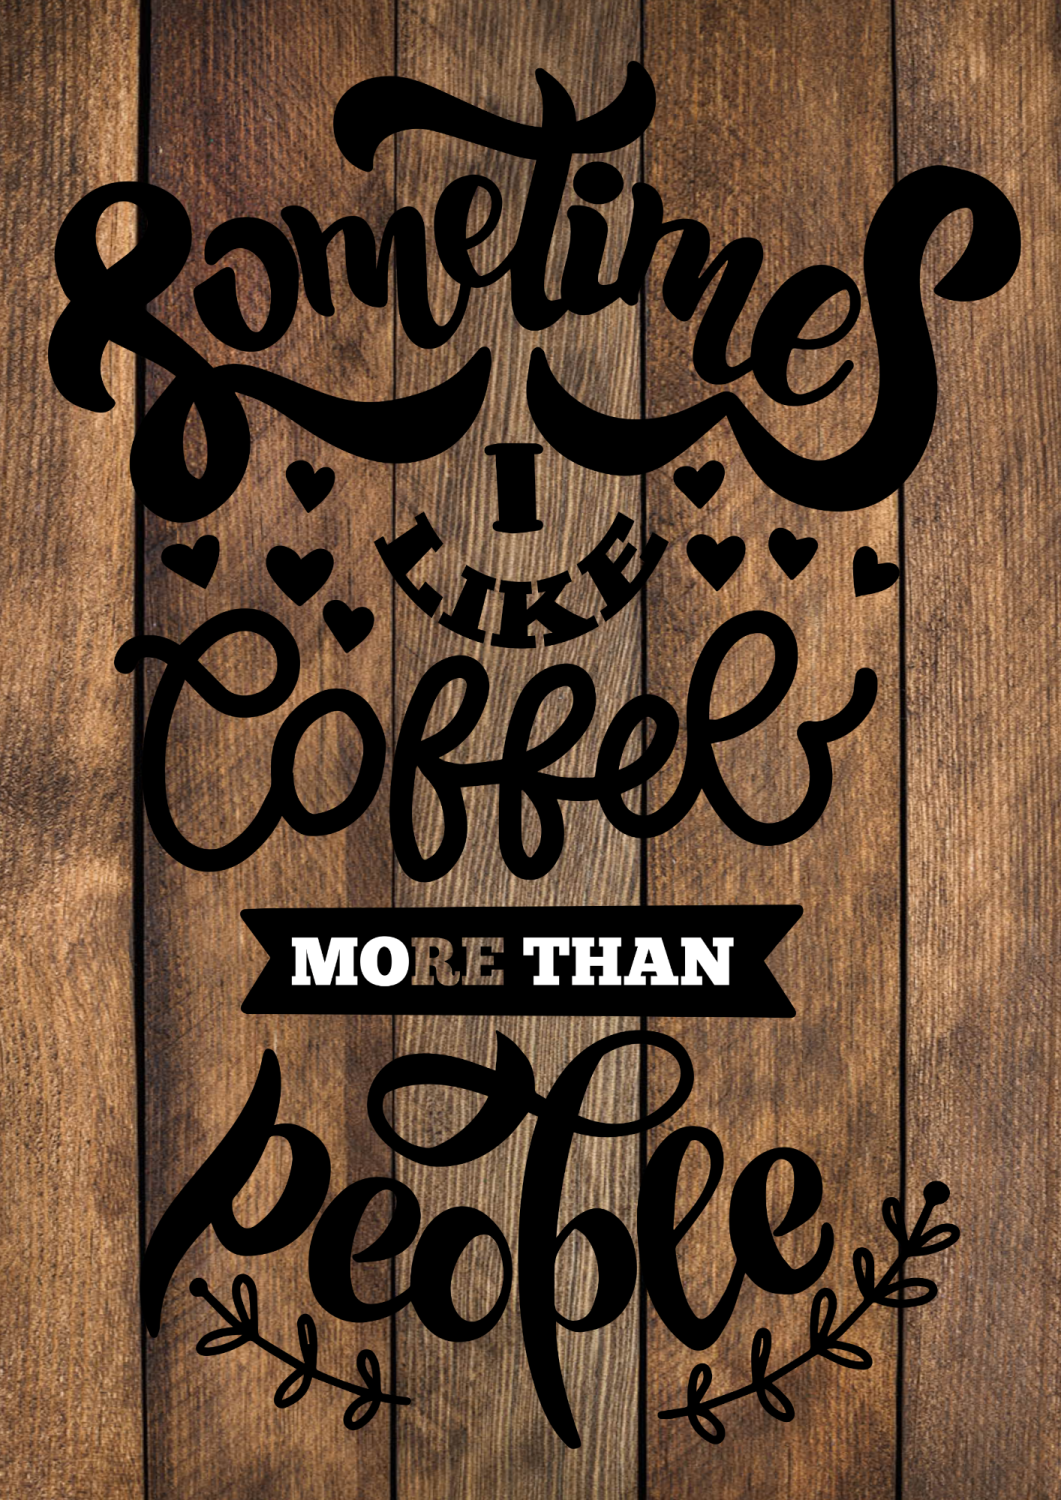 COFFEE NOW WINE LATER WOOD EFFECT METAL SIGN 29CM'S X 20CM'S